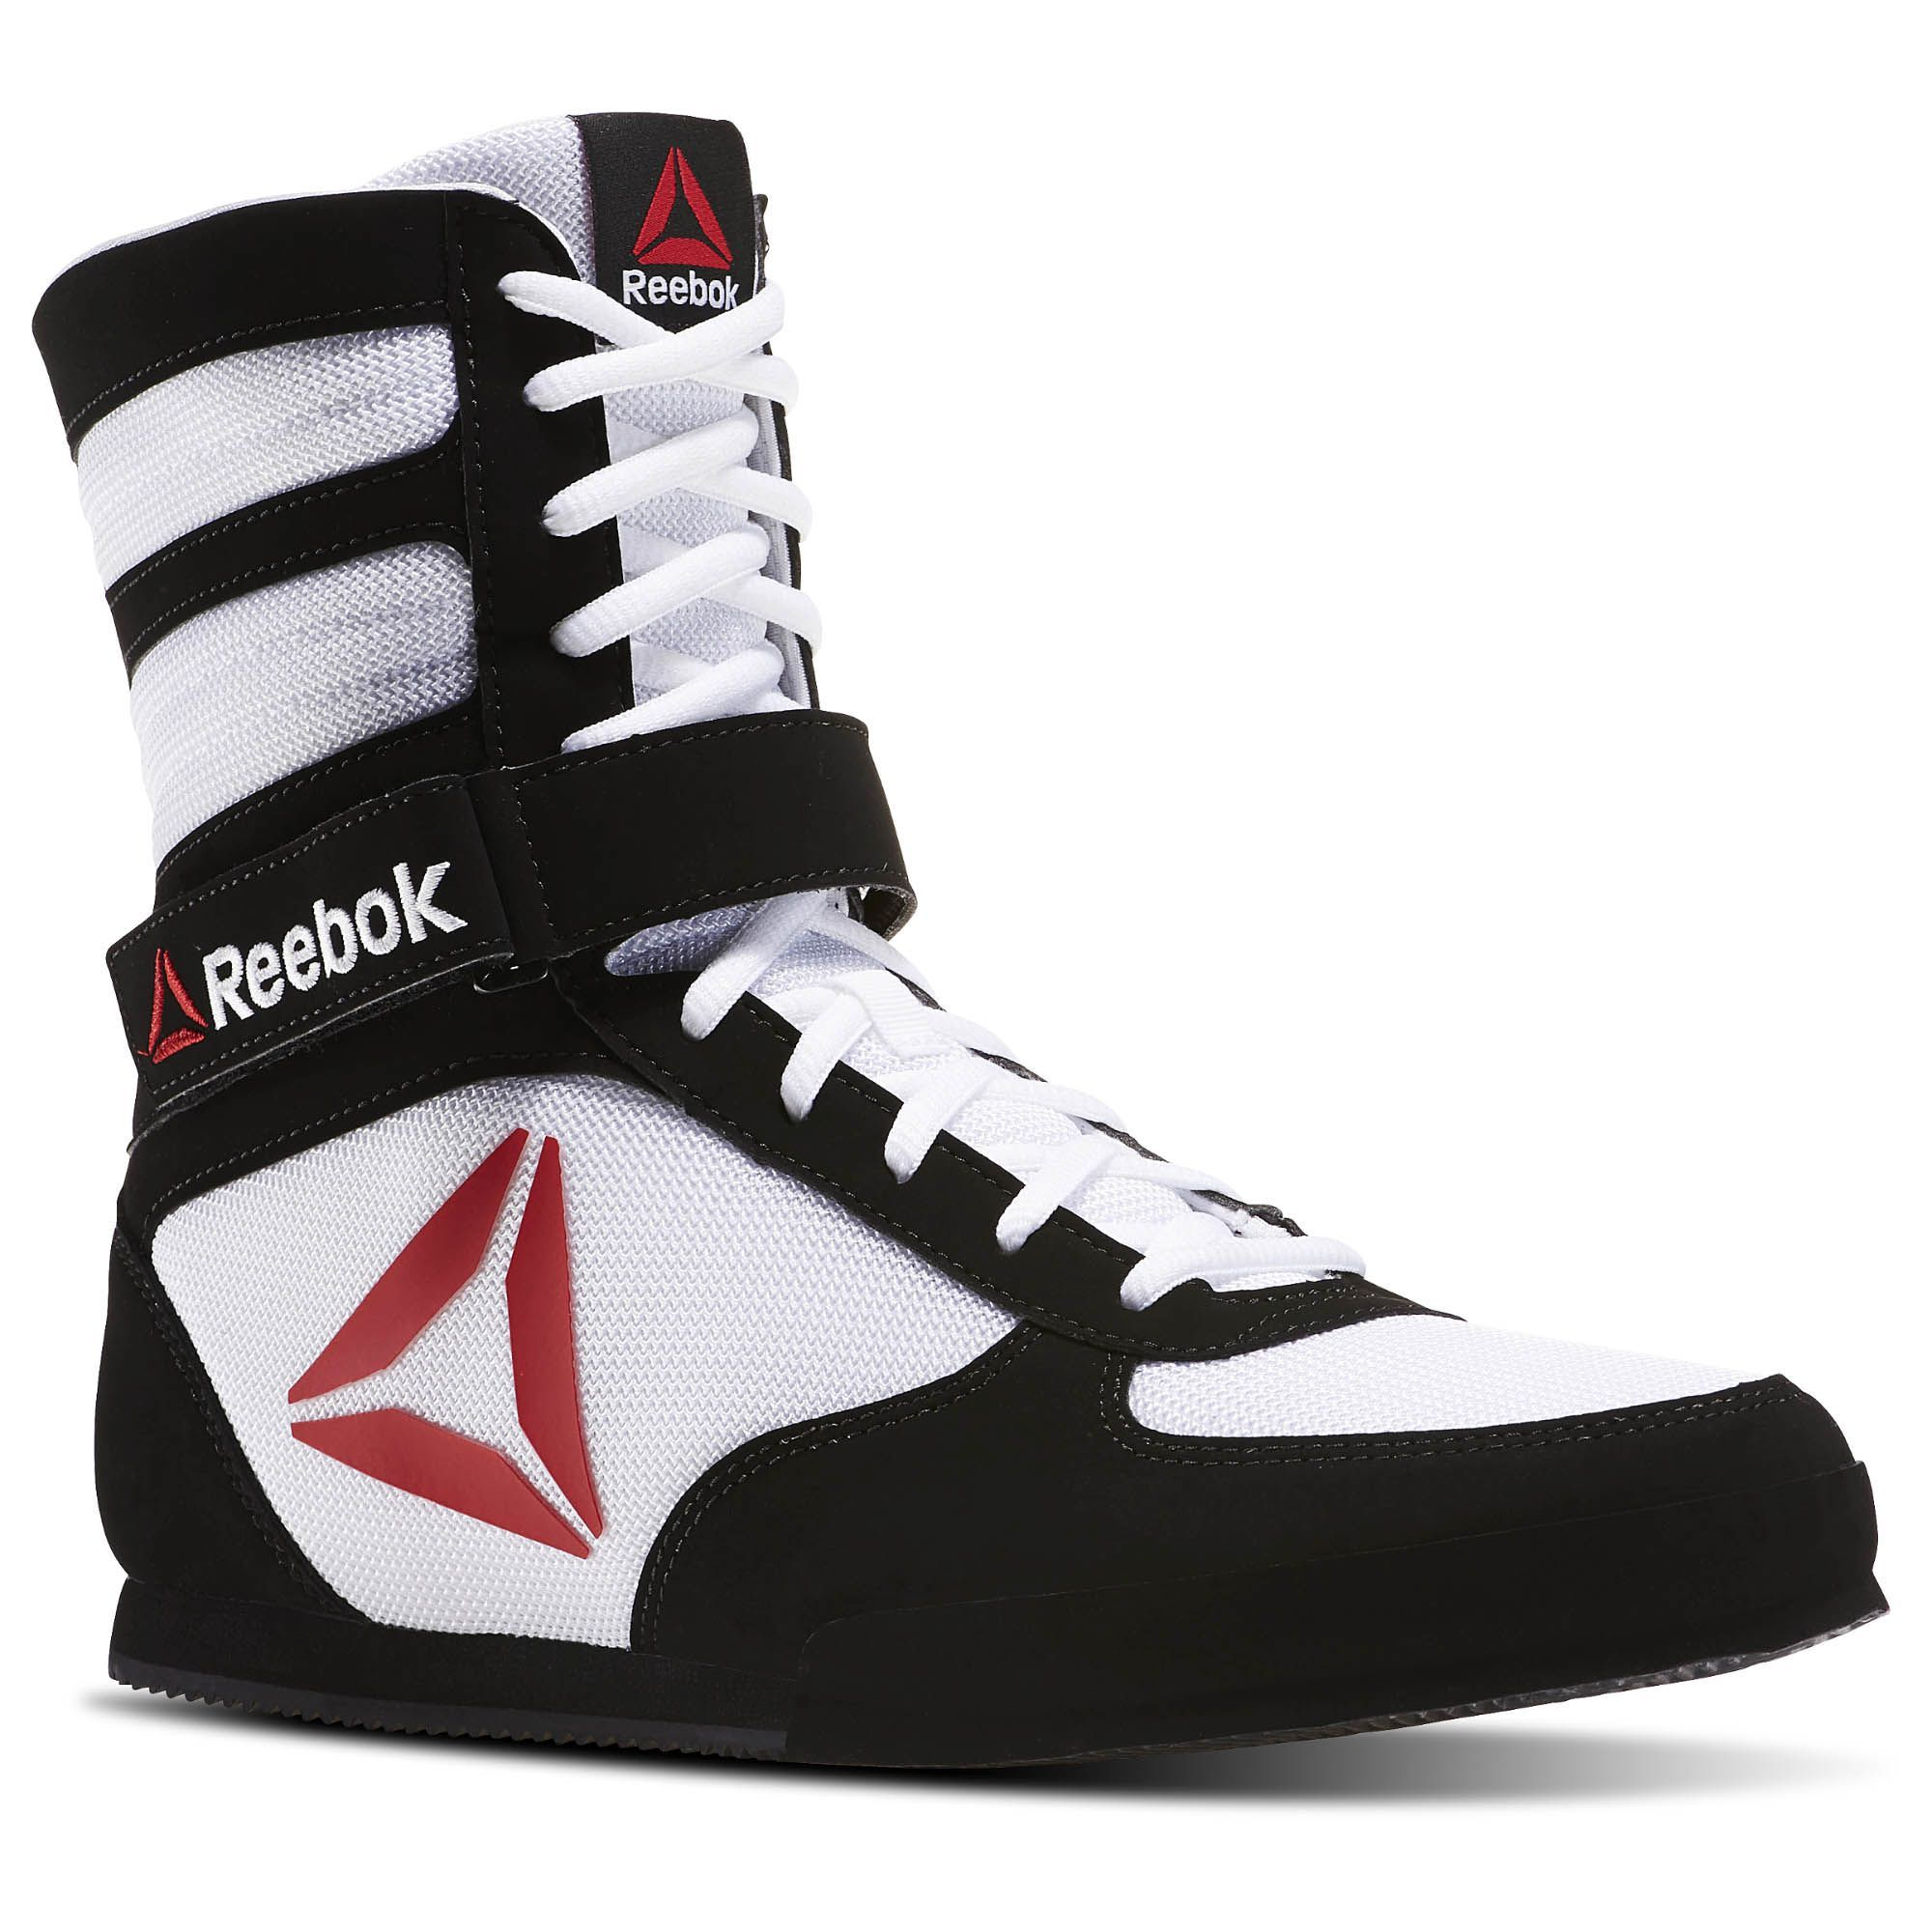 Reebok Boxing Shoes Review | Boxing boots, Boxing shoes